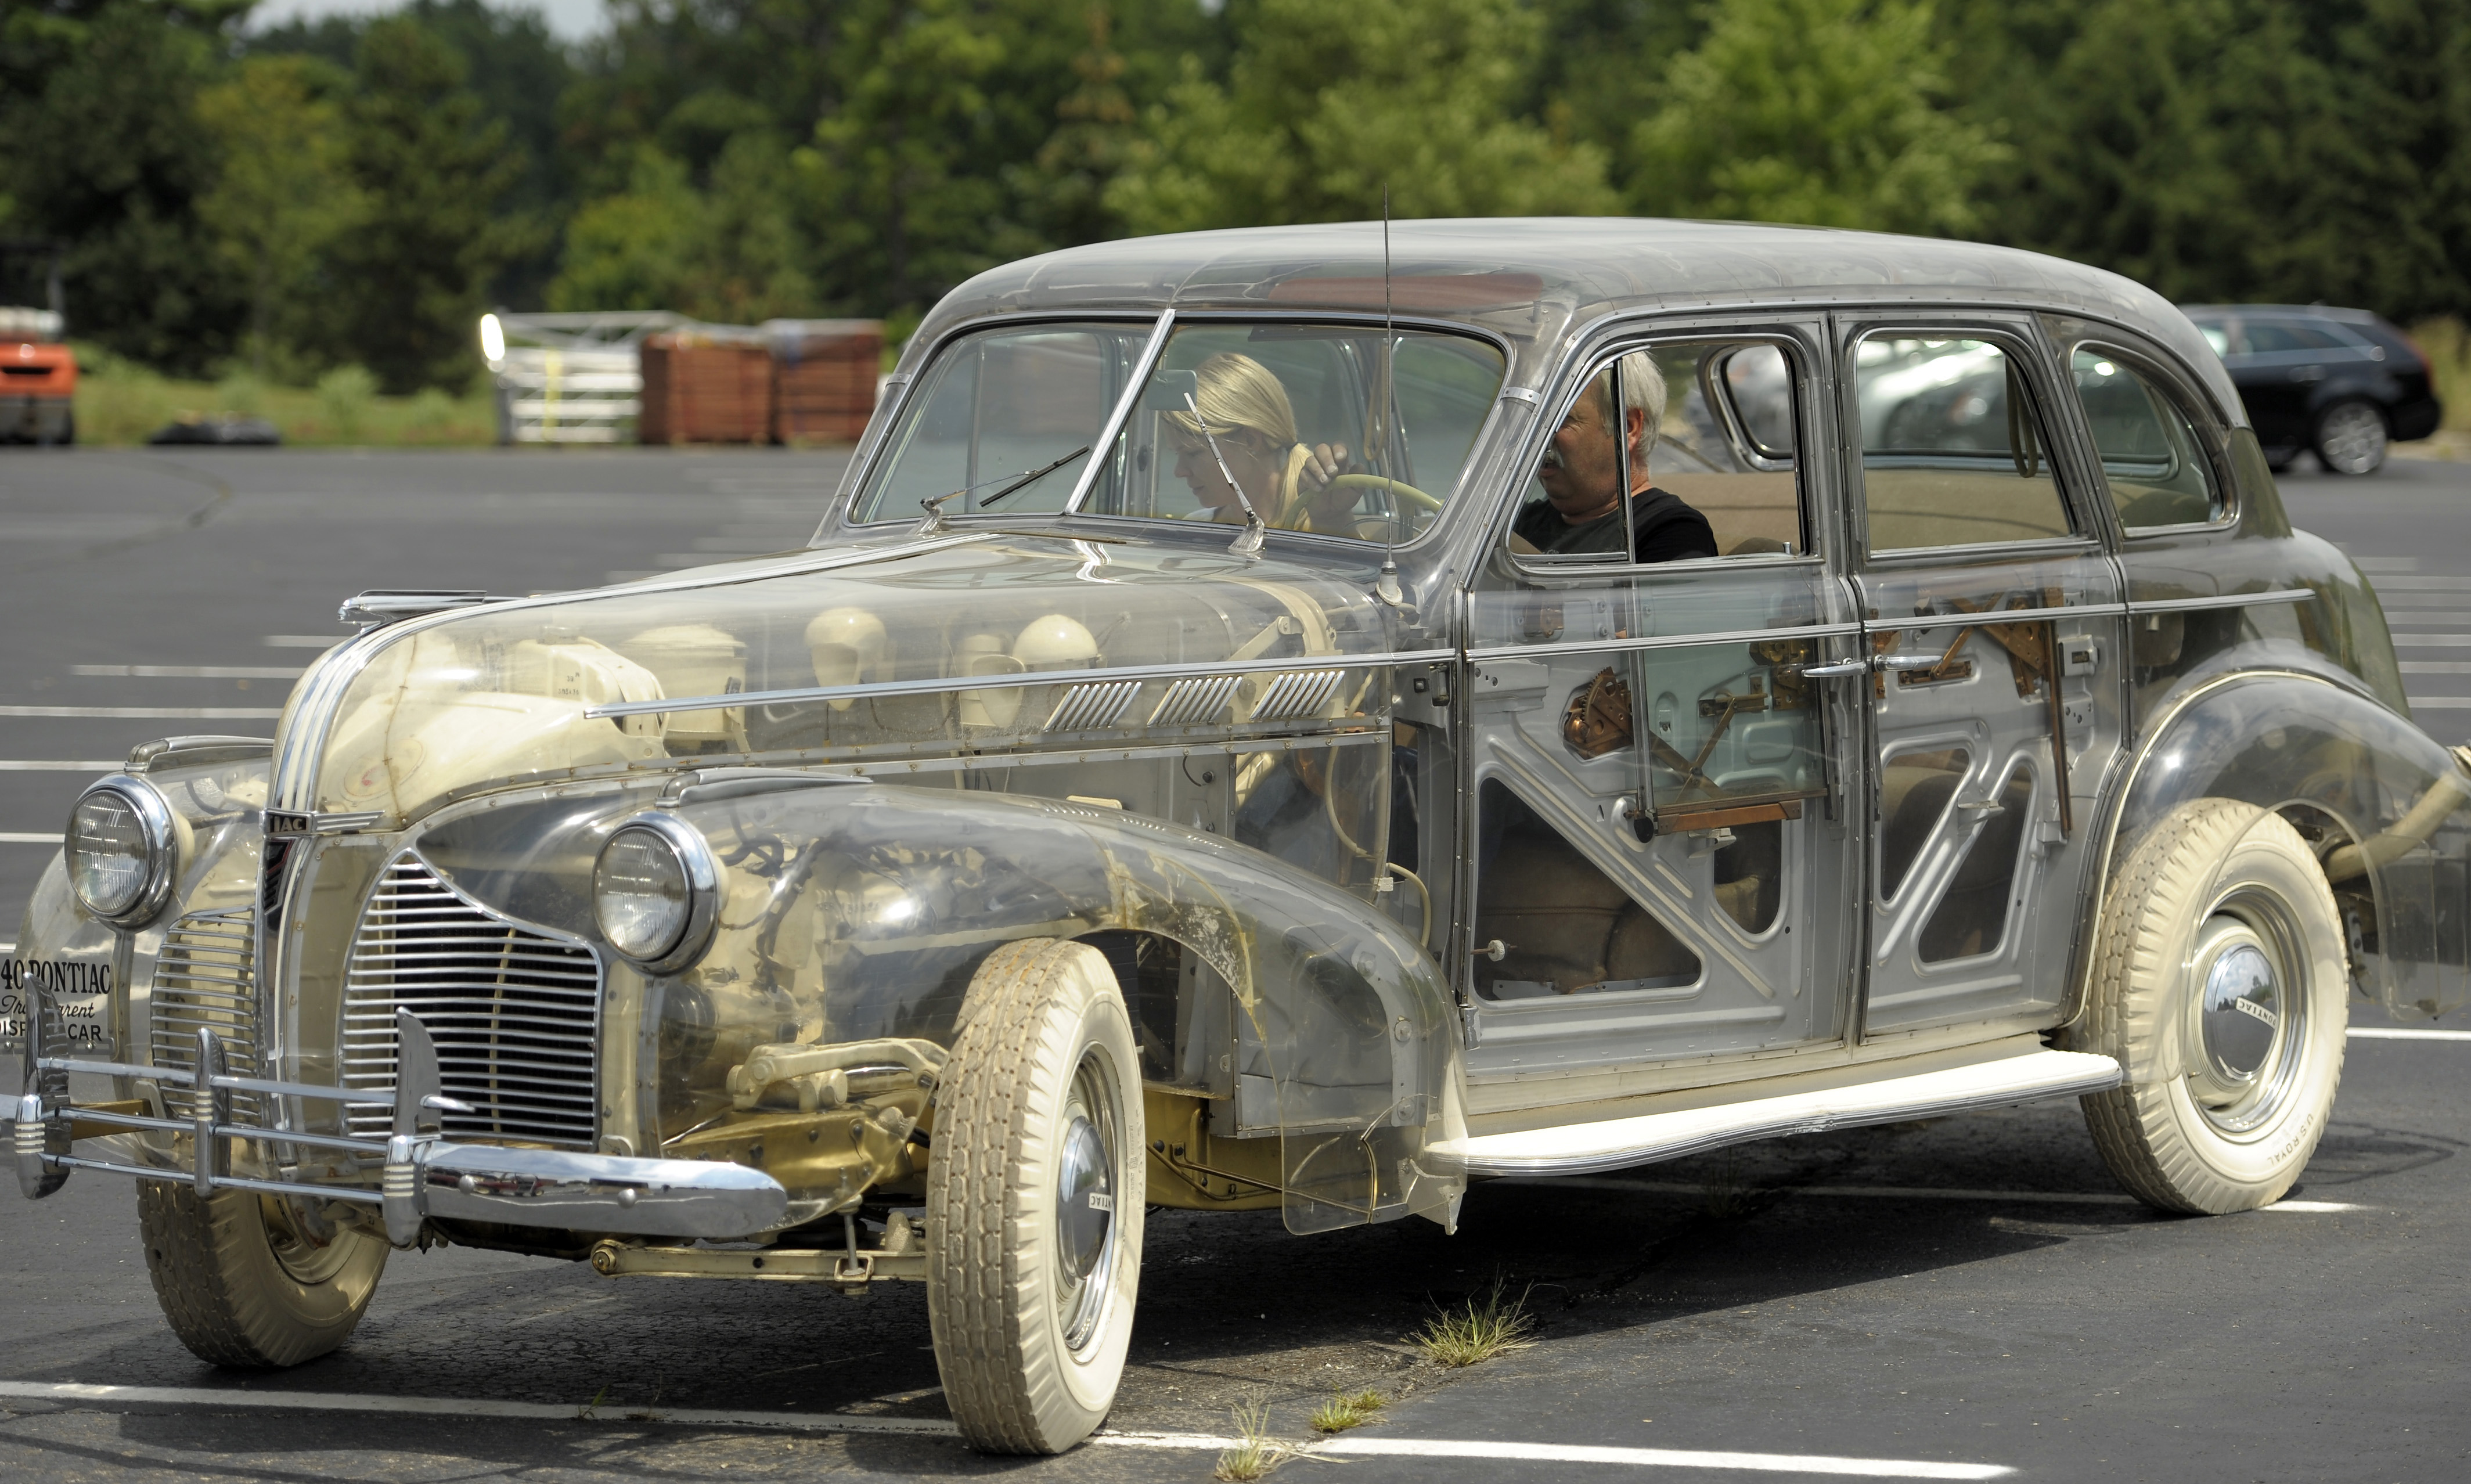 Wrote The 1939 Pontiac Deluxe 6 Also Referred To As Ghost Car Because Its Chis Was Constructed Of Plexigl Is Driven At Inn St Johns